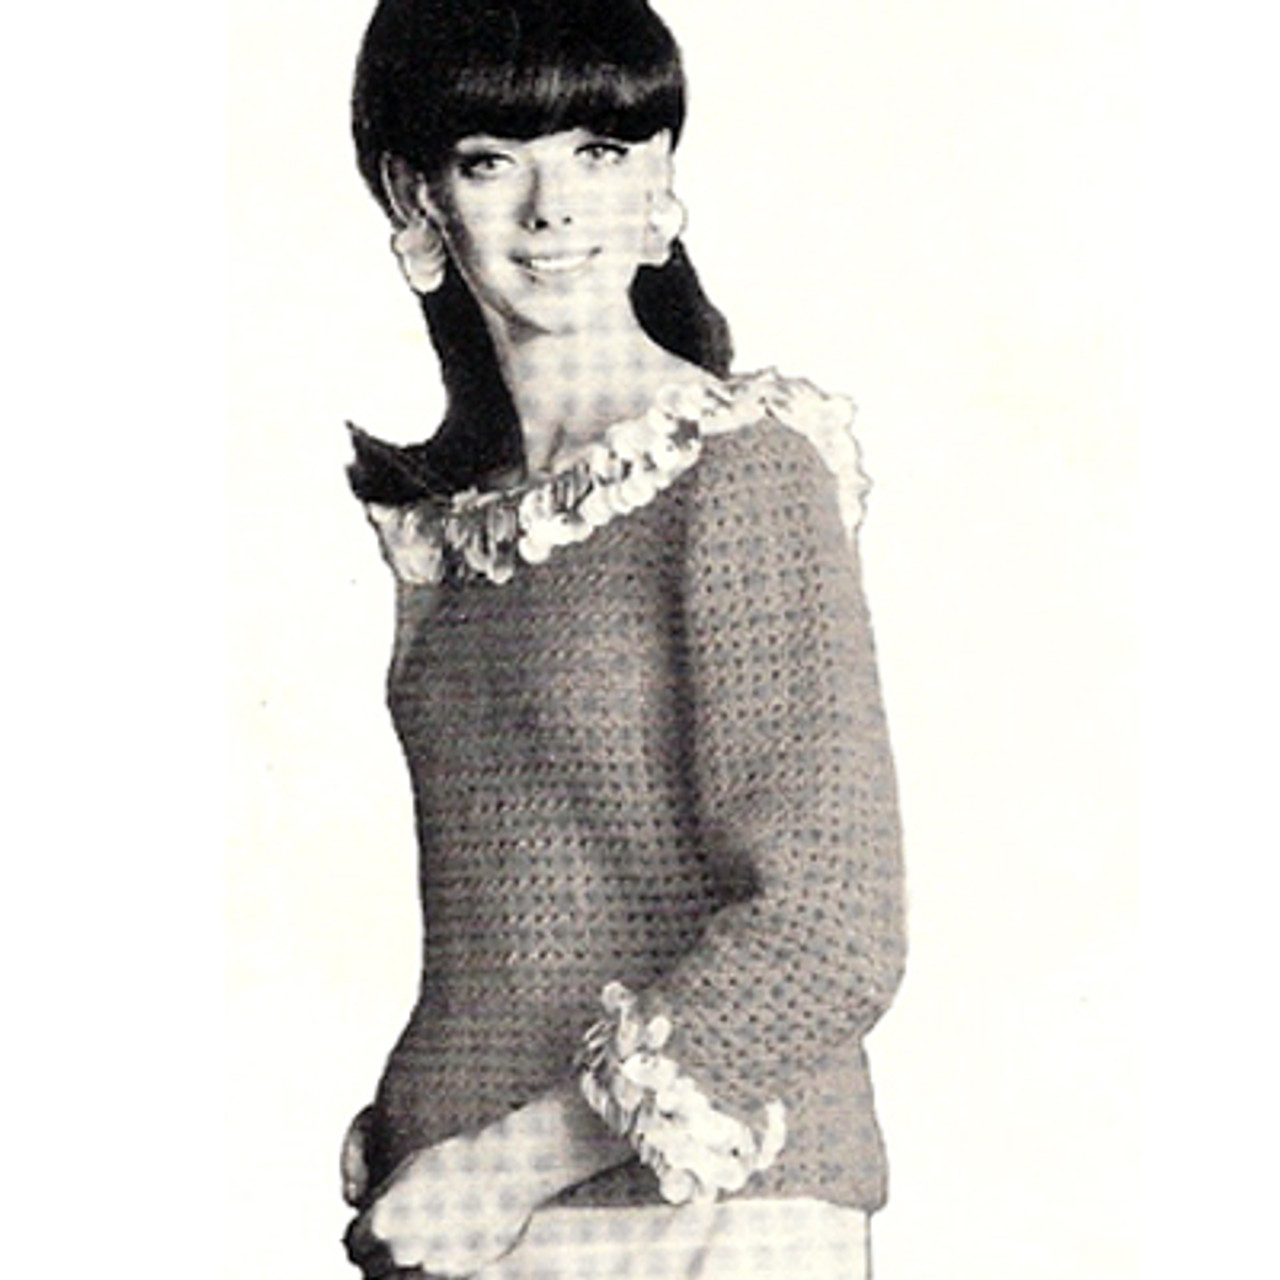 Loose Fitting Crochet Sweater with Bangle Trim